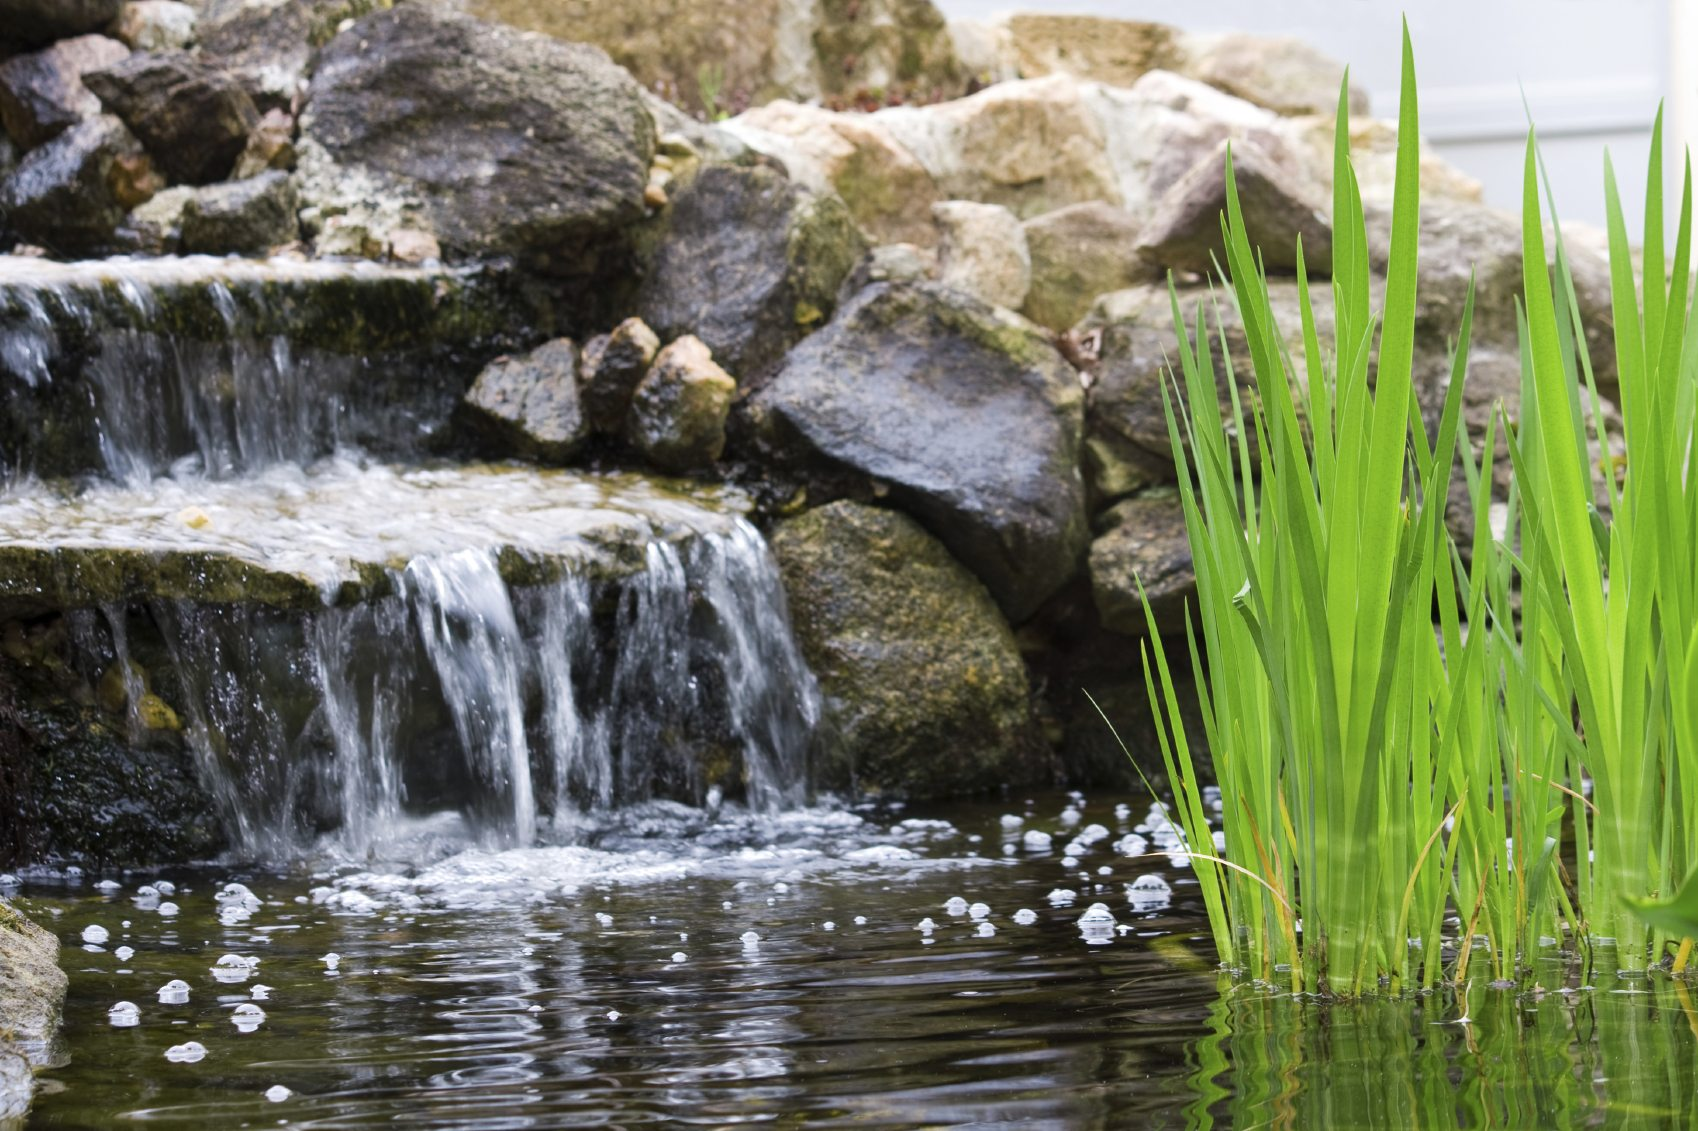 Backyard pond waterfalls how to build a pond waterfall for Build a simple backyard waterfall